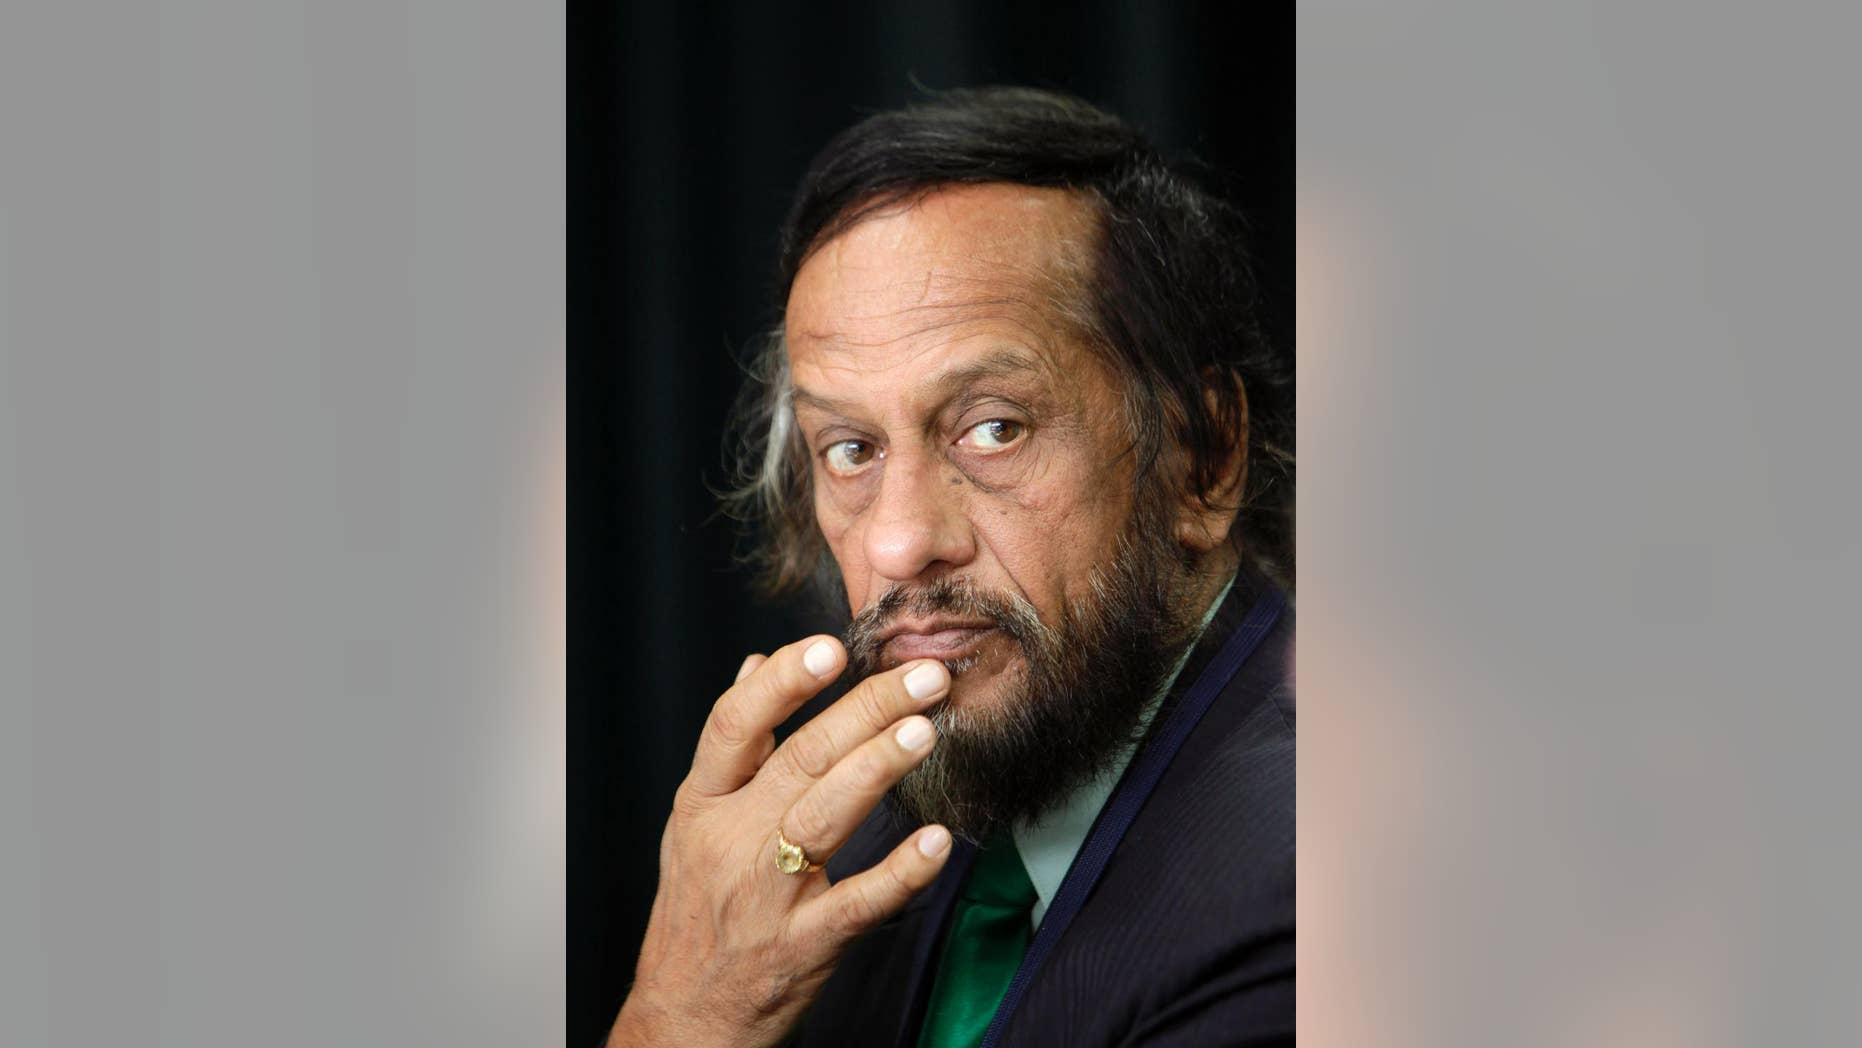 FILE - In this Dec. 1, 2009, file photo, Chairman of the United Nations panel on climate change Rajendra Pachauri looks on at a press conference in New Delhi, India. The former chairman of the U.N. climate panel has been removed from his job as head of a top energy institute in India following allegations of sexual harassment. The Energy and Resources Institute announced late Thursday, July 23, 2015 that Pachauri would be replaced by Arun Mathur, an energy efficiency expert. (AP Photo/Gurinder Osan, File)